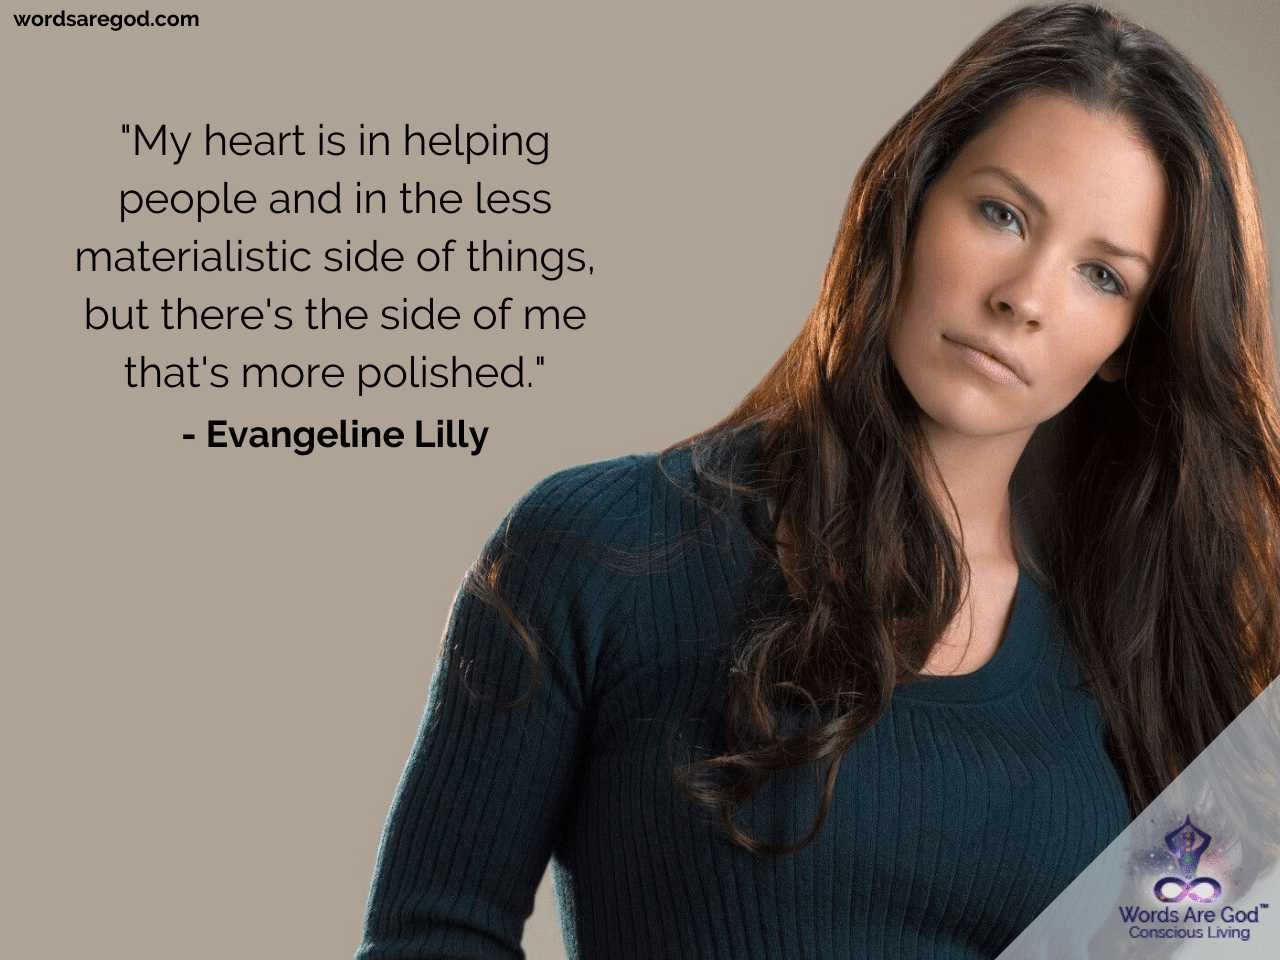 Evangeline Lilly Inspirational Quotes